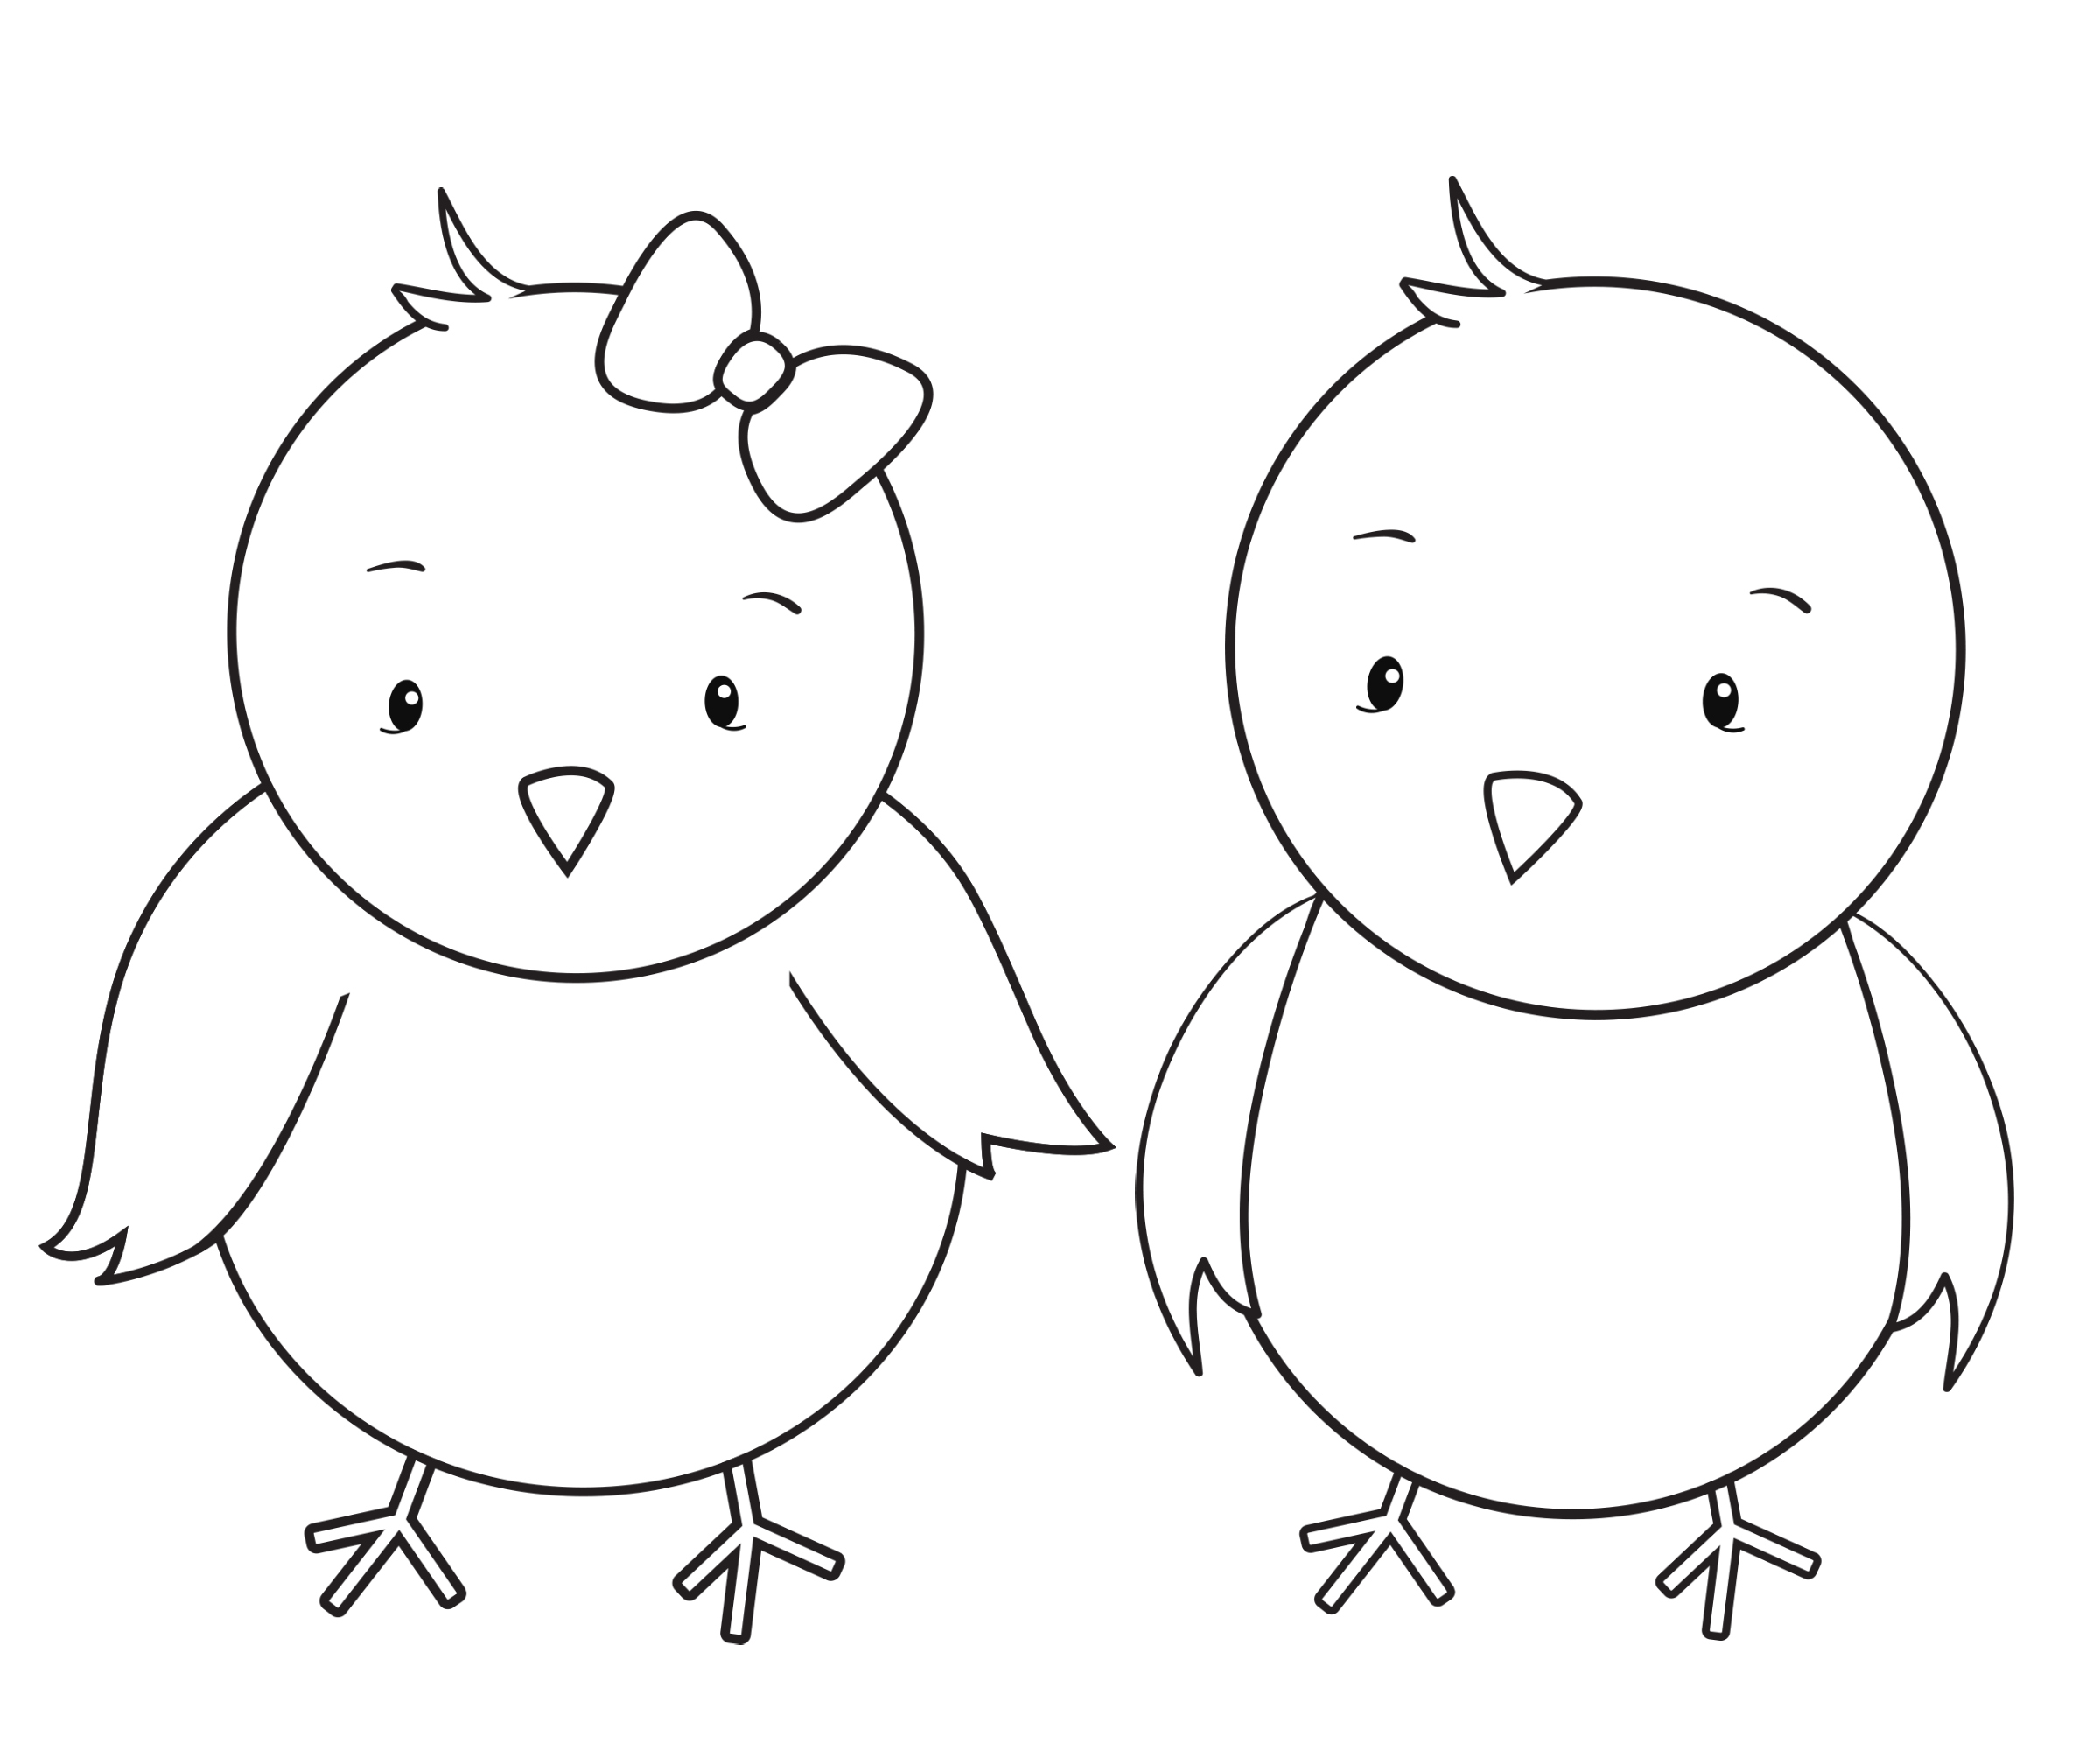 coloring pages easter - photo#31